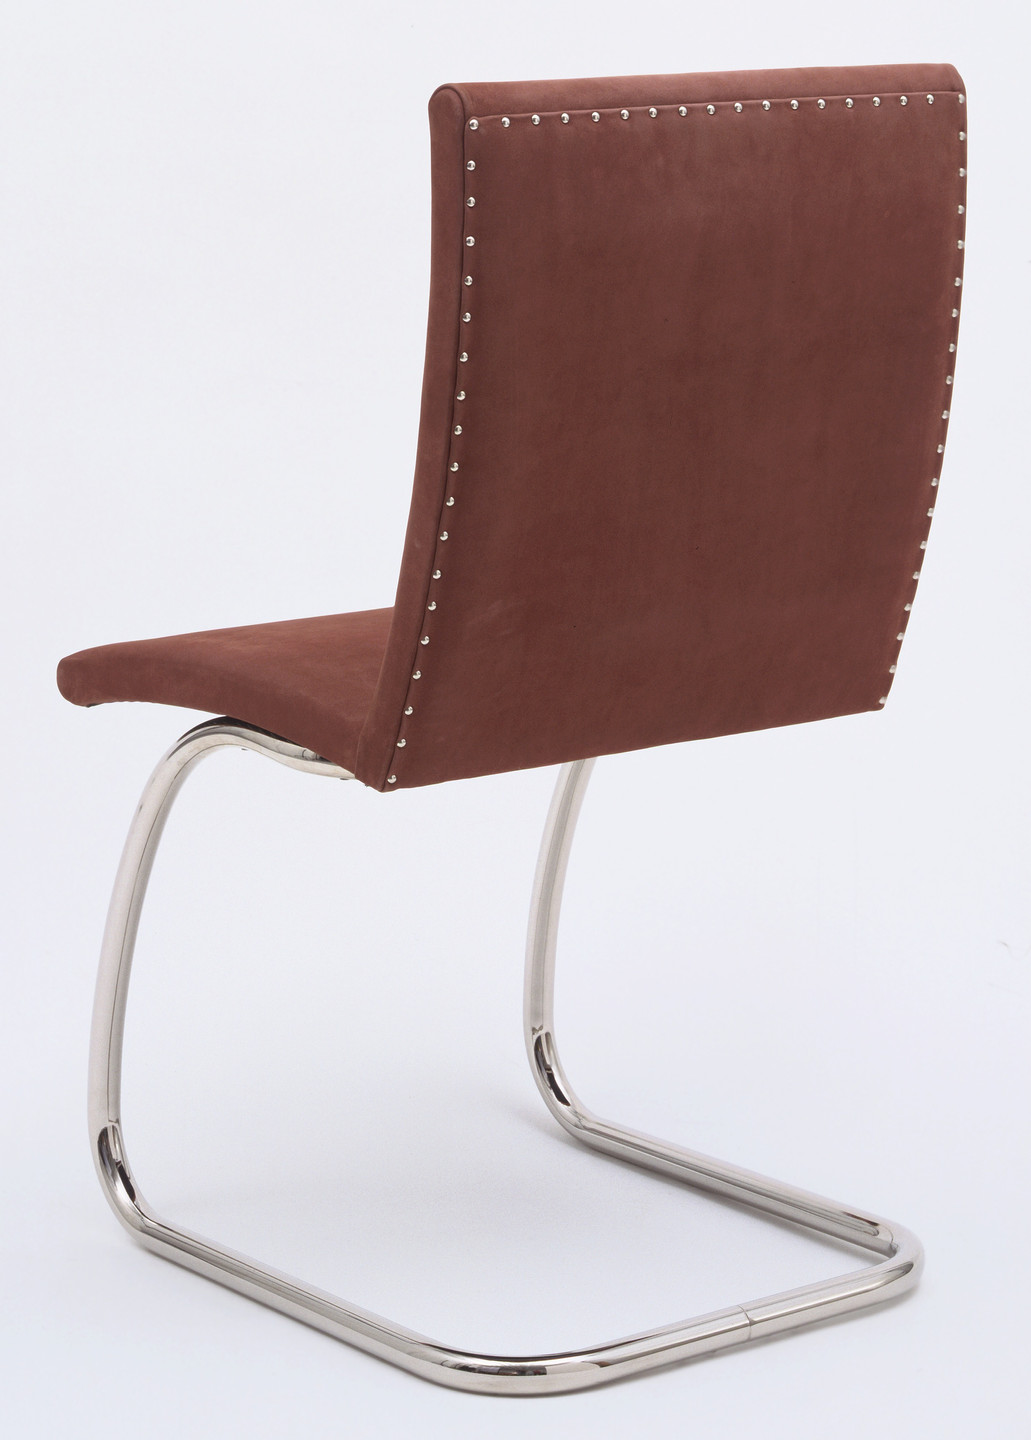 Lilly Reich, The Knoll Group, New York, NY. LR Small Chair (LR 120). 1931